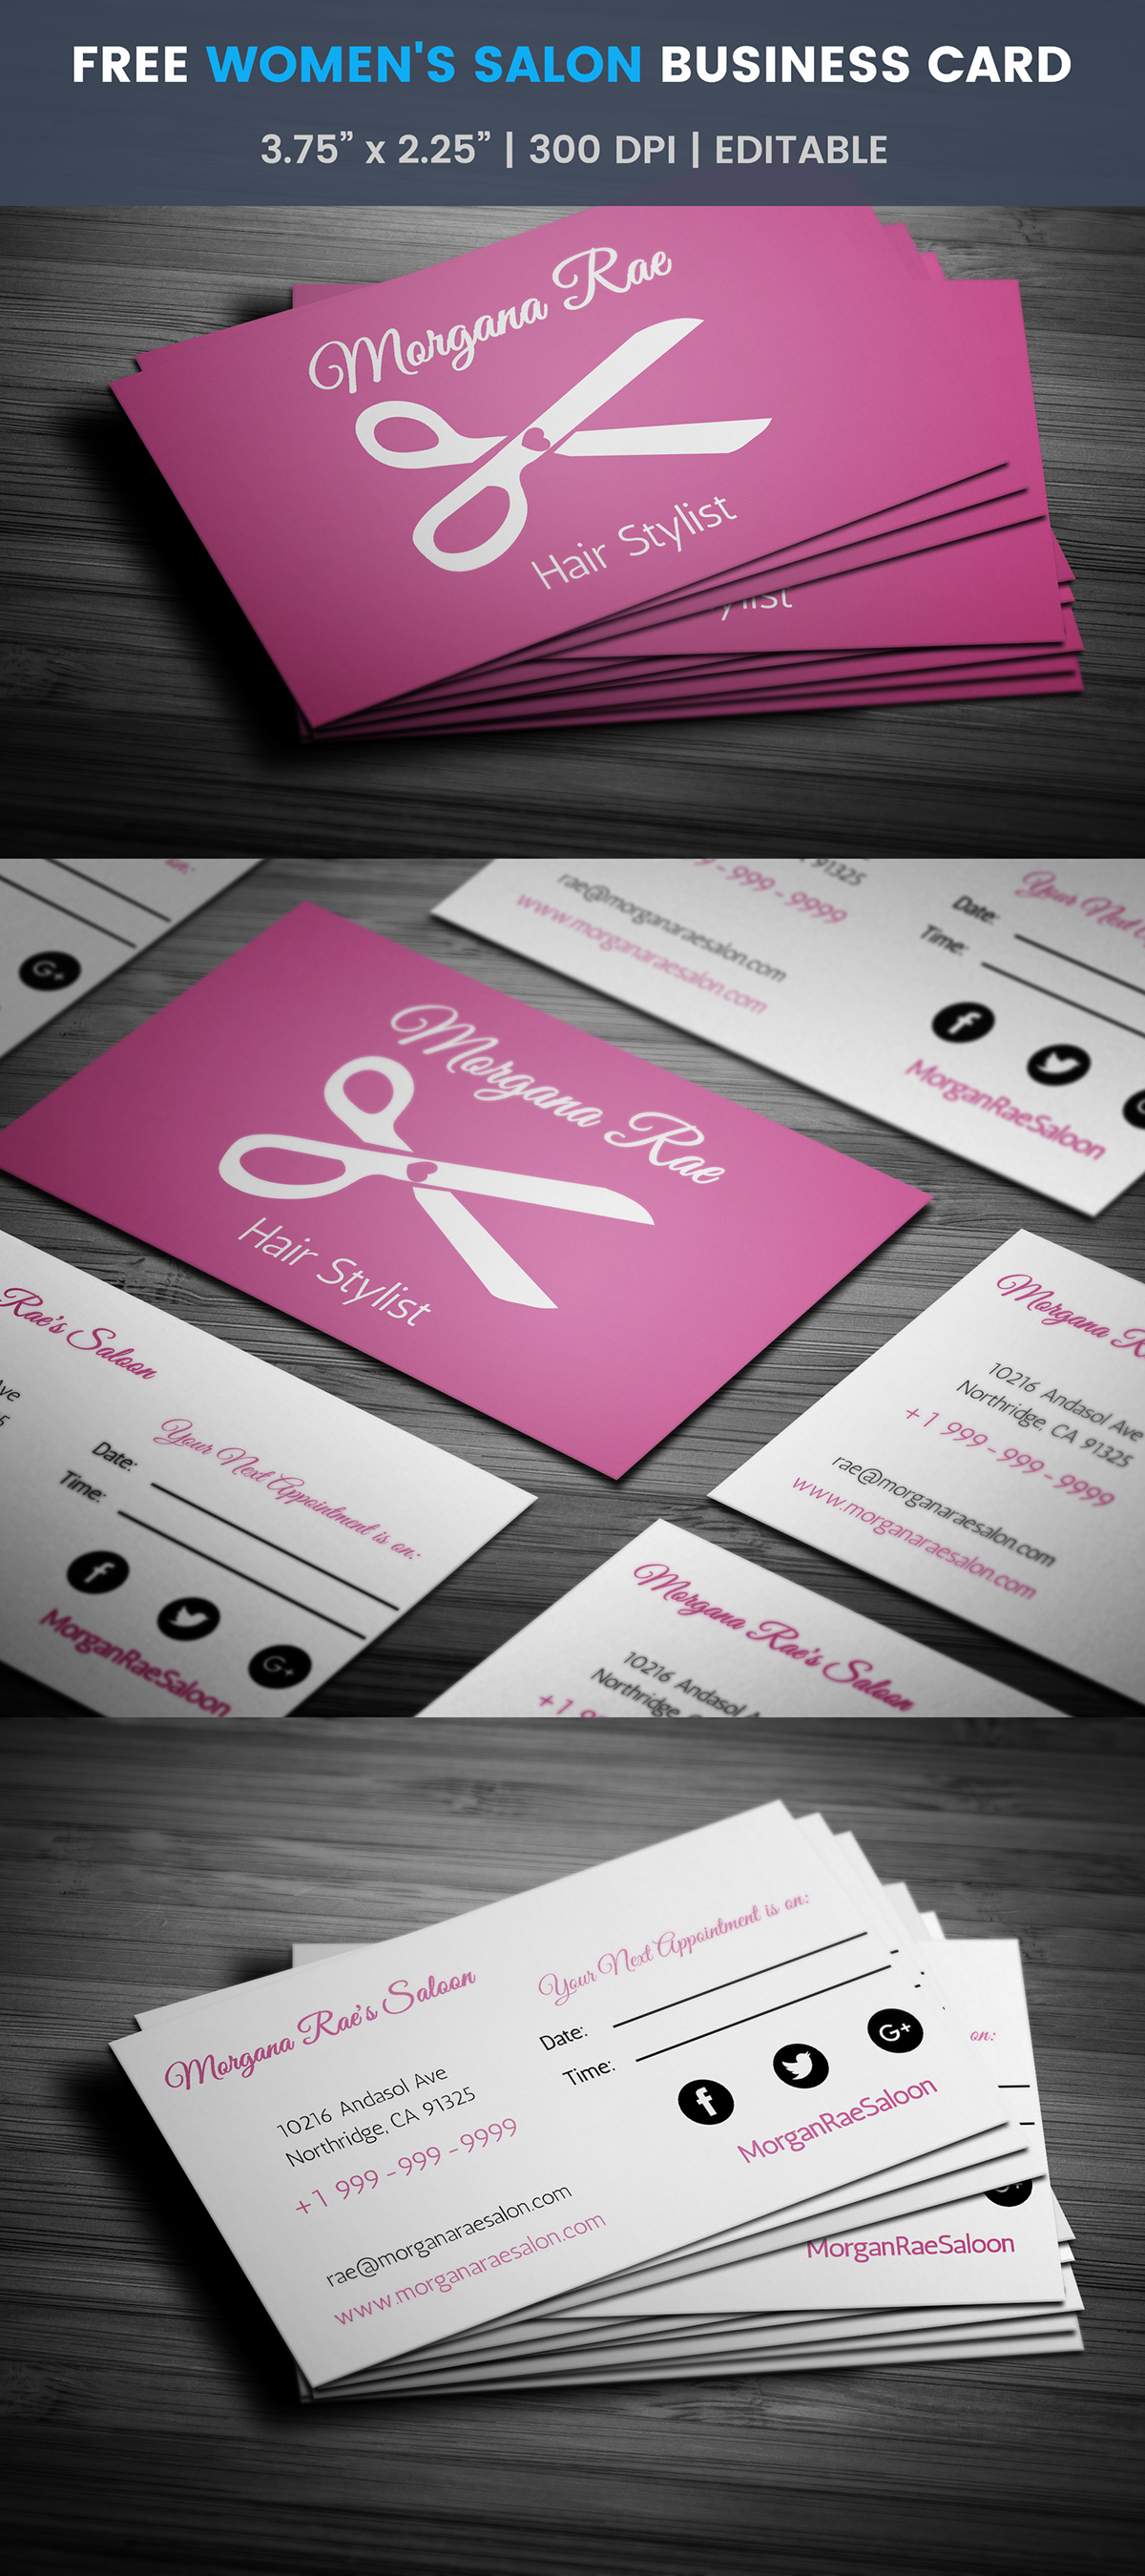 Free hairstylist business card template on pantone canvas gallery free hairstylist business card template friedricerecipe Images